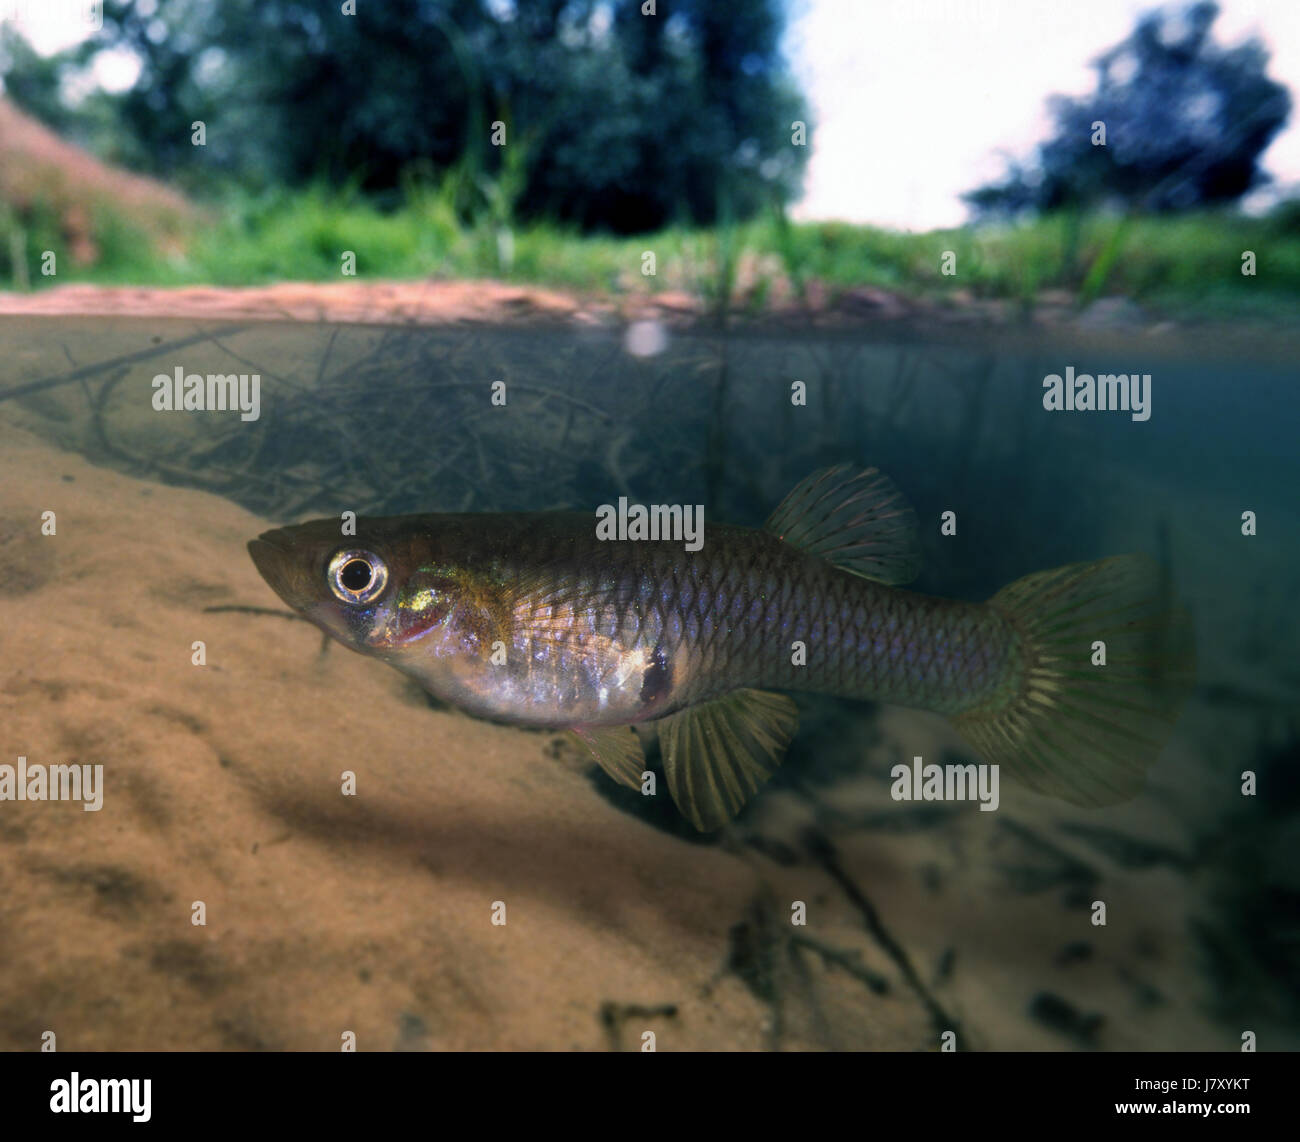 Eastern mosquitofish, Gambusia holbrooki, female. On river environment.  Portugal - Stock Image